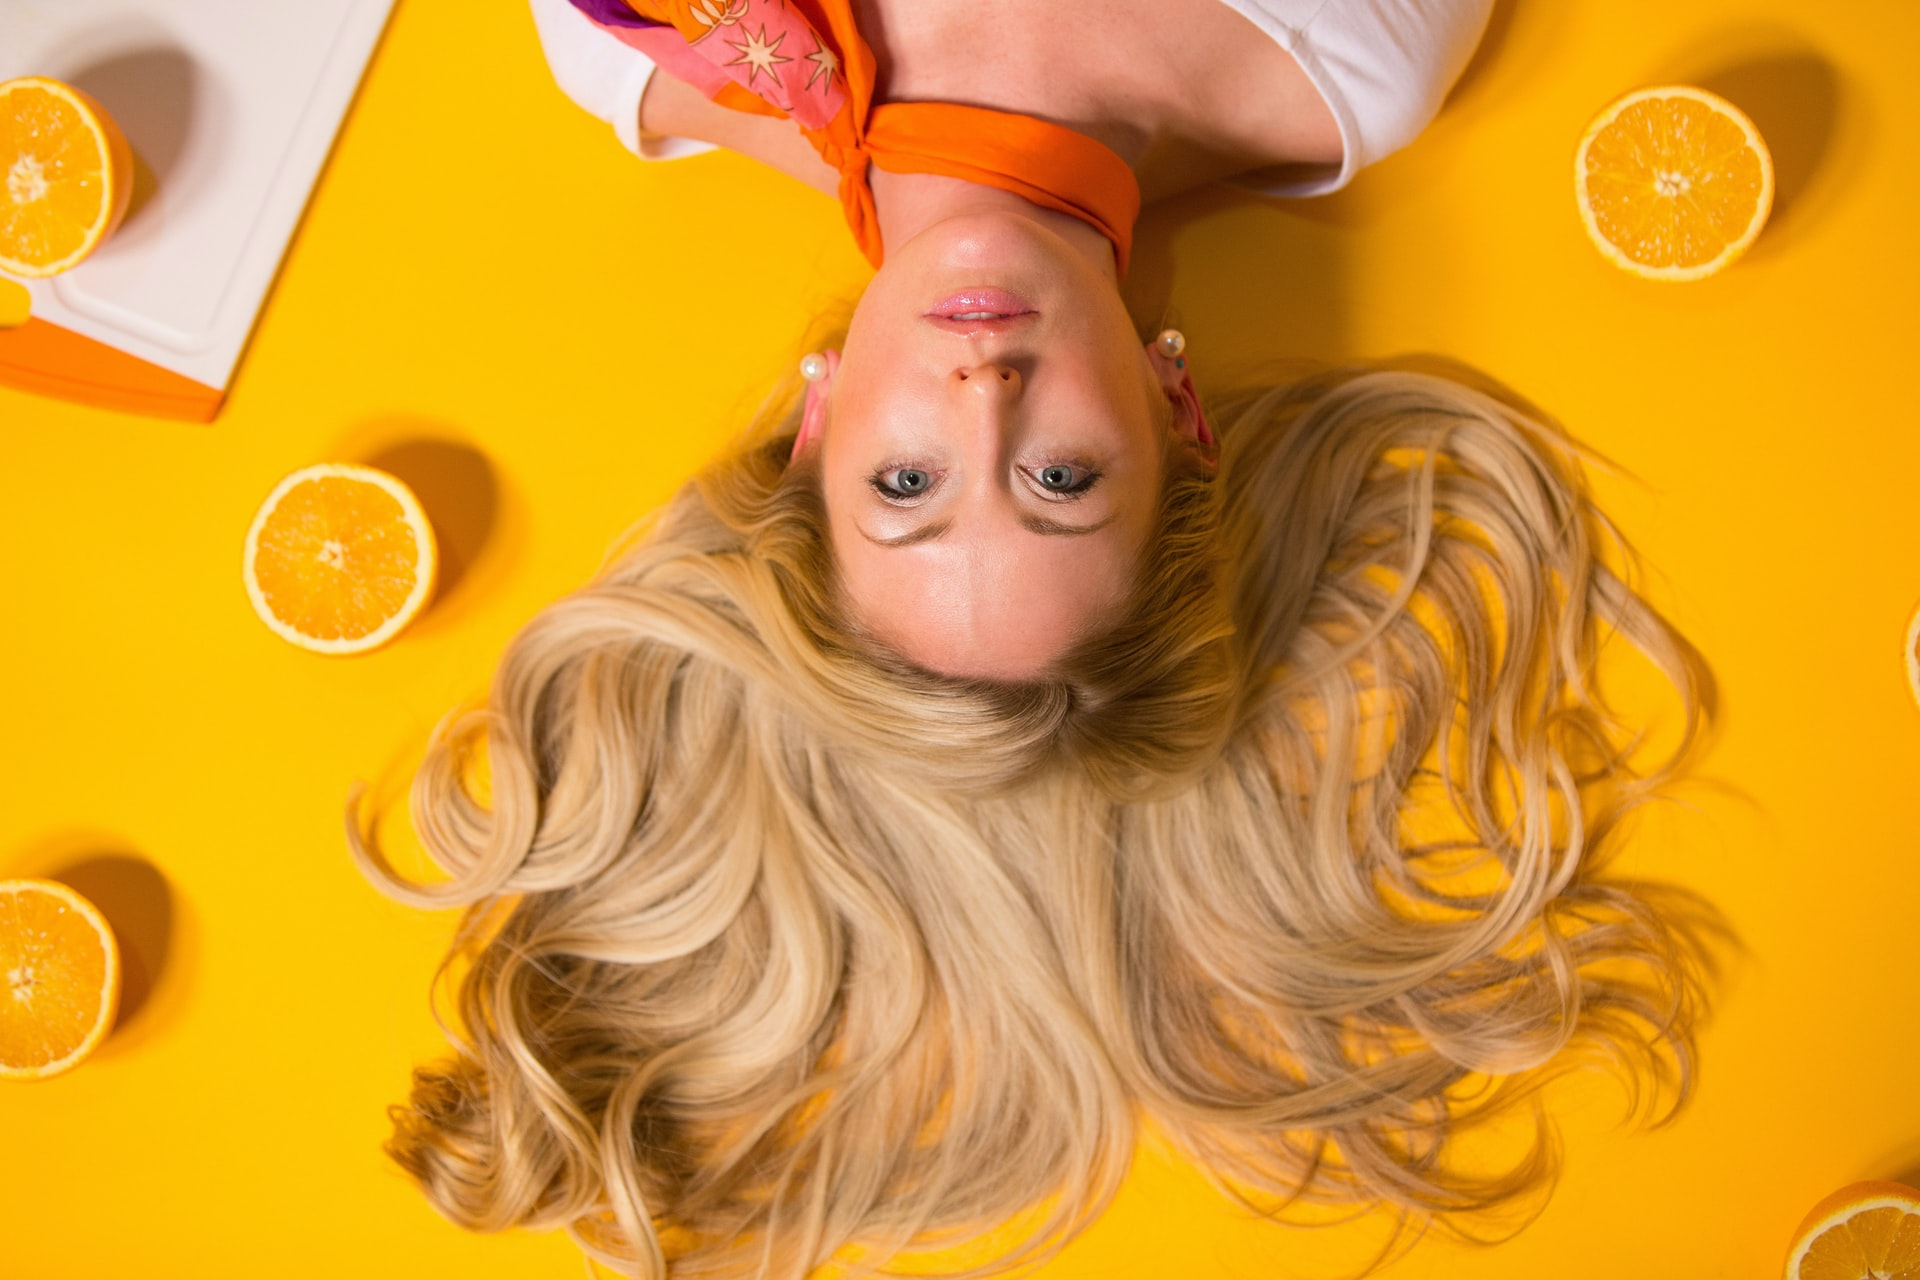 DIY hair conditioner & DIY oil for hair growth with orange